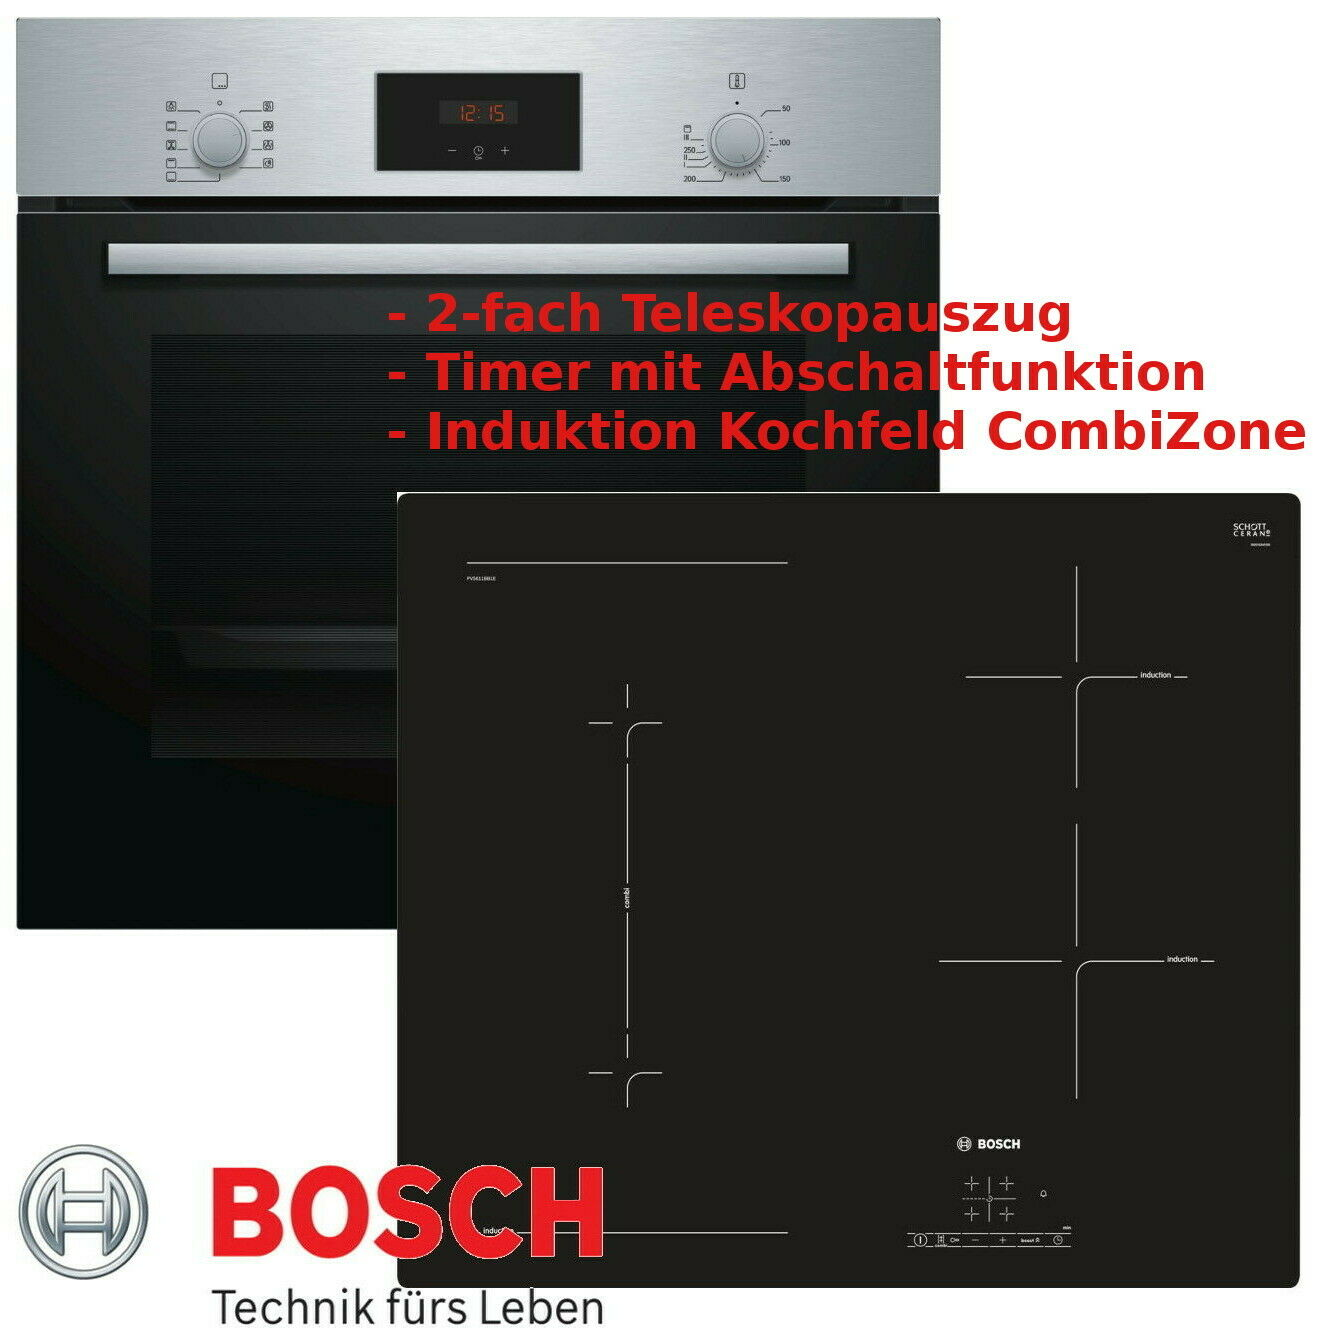 herdset induktion autark bosch einbau backofen induktion glaskeramik kochfeld eur 799 00. Black Bedroom Furniture Sets. Home Design Ideas